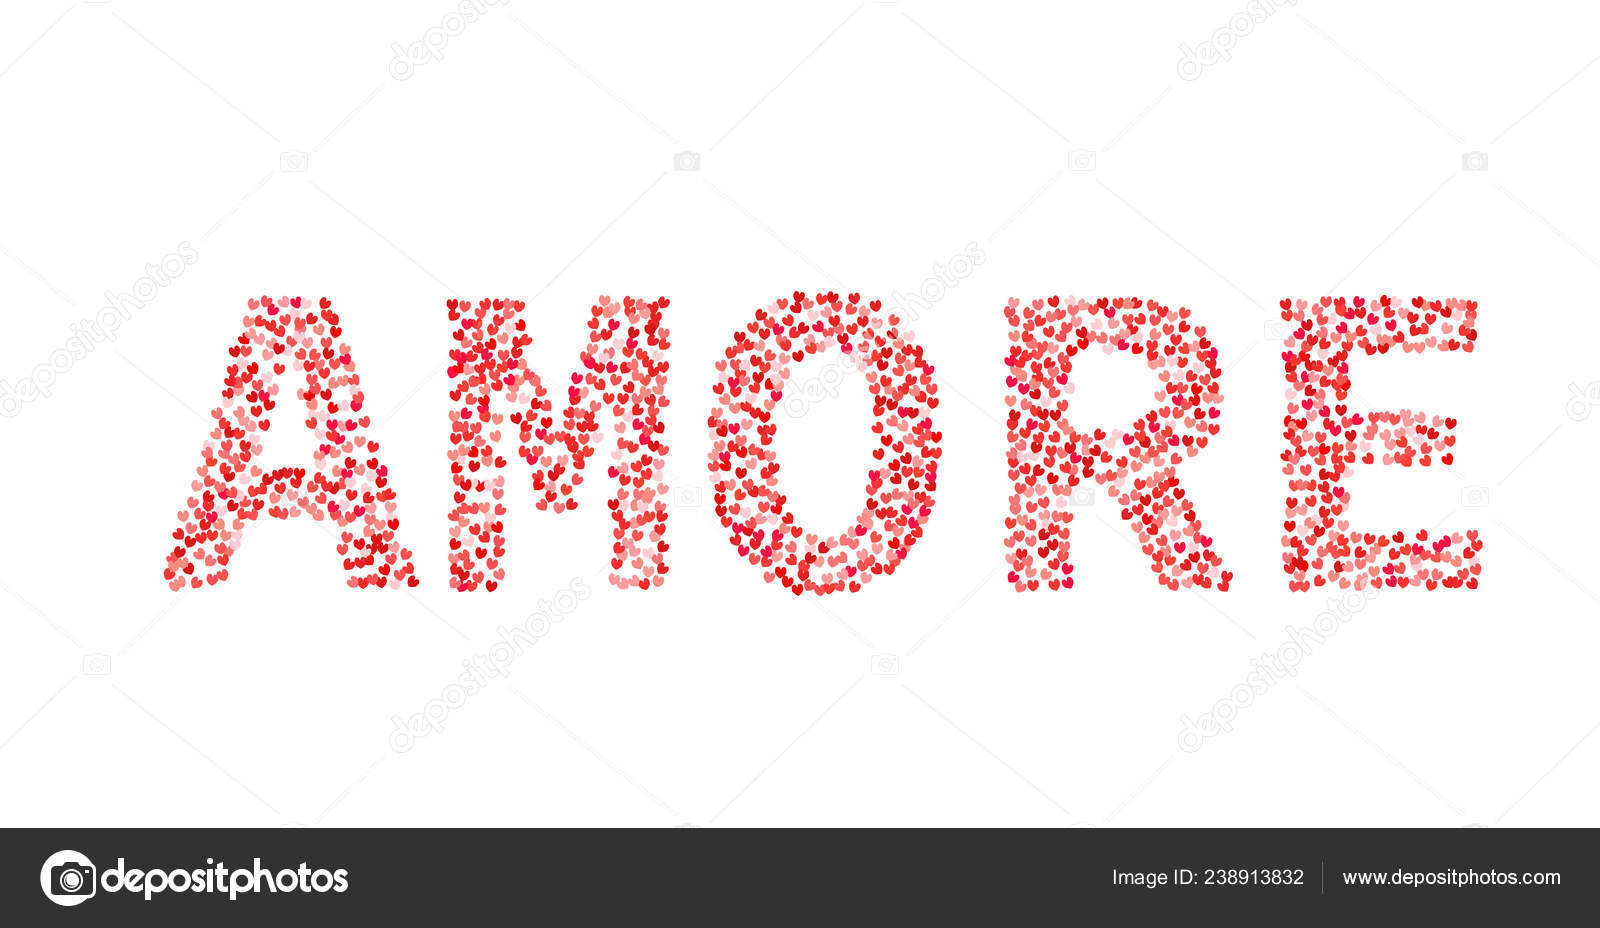 Word Amore Made Little Hearts Shades Red Pink Love Italian Stock Vector C Designergraphic84 238913832